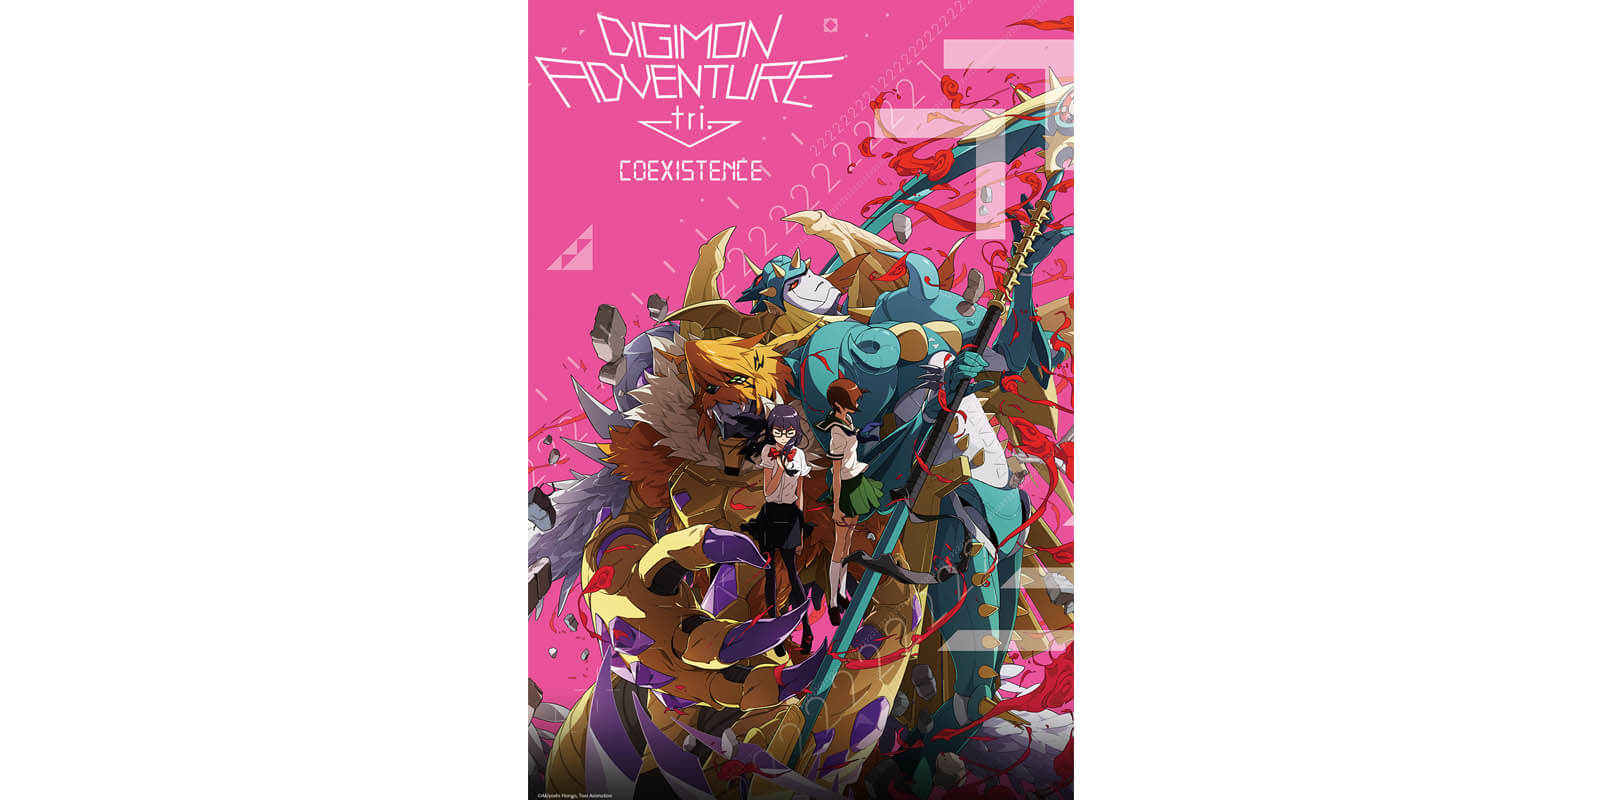 Digimon Adventures tri: Coexistence